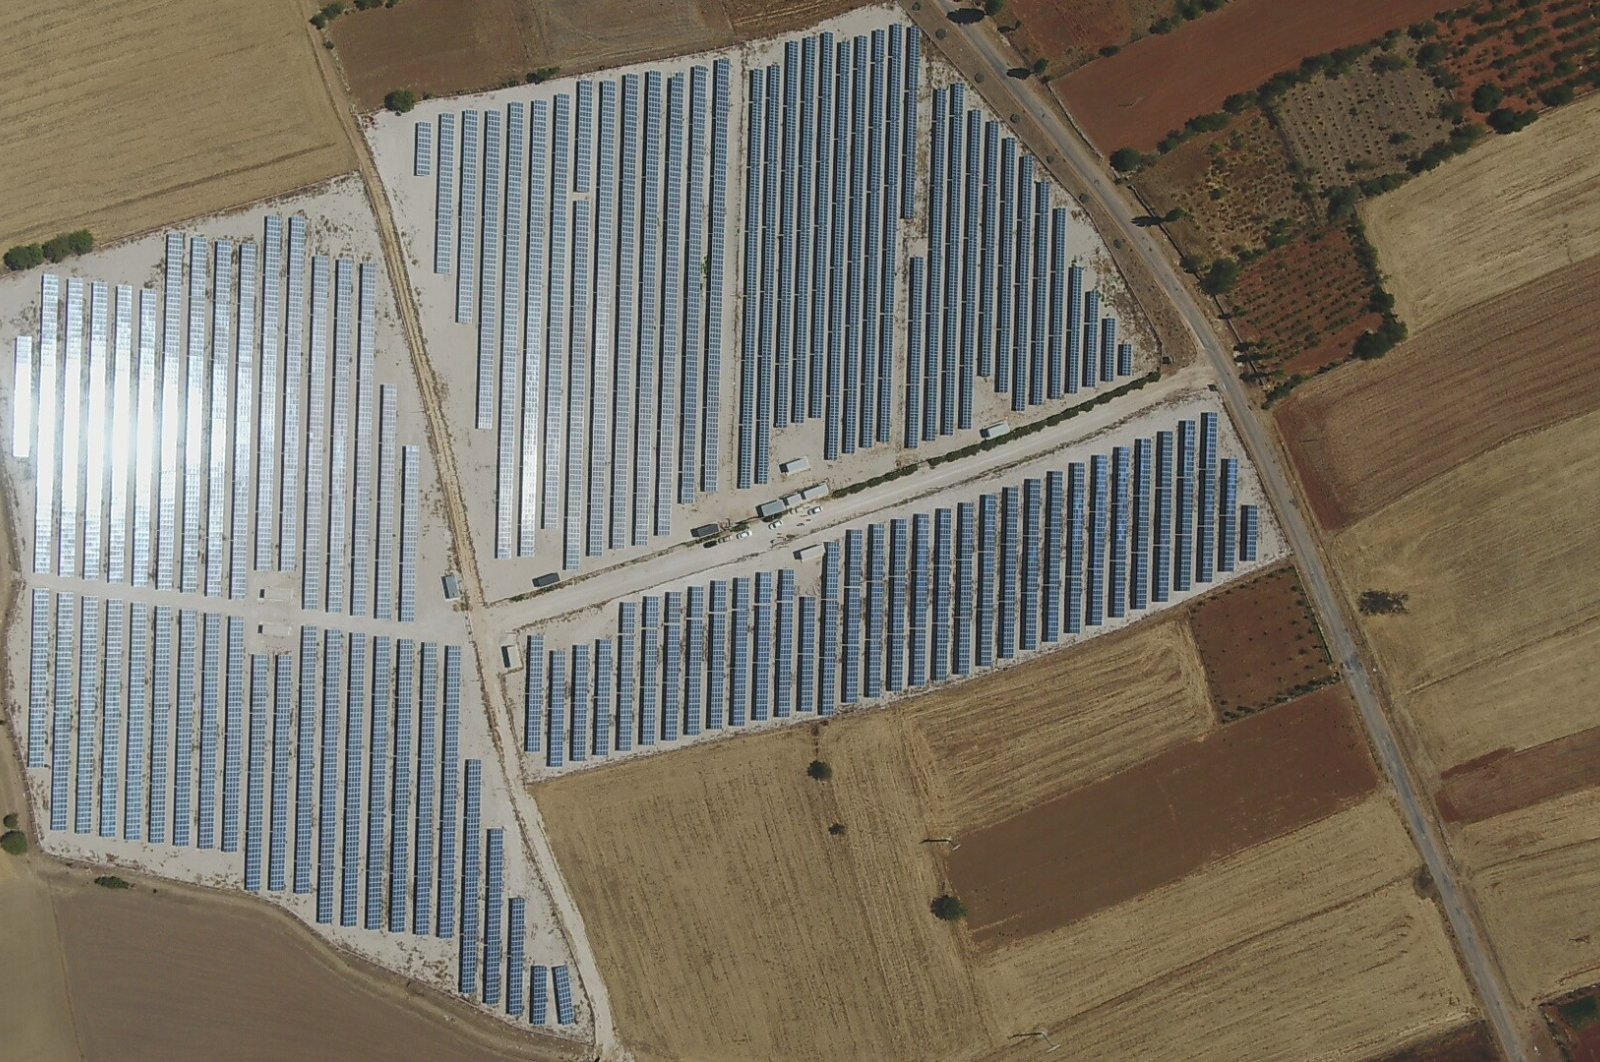 Solar panels are seen in the southern province of Antalya, Turkey, Sept. 12, 2021. (IHA Photo)